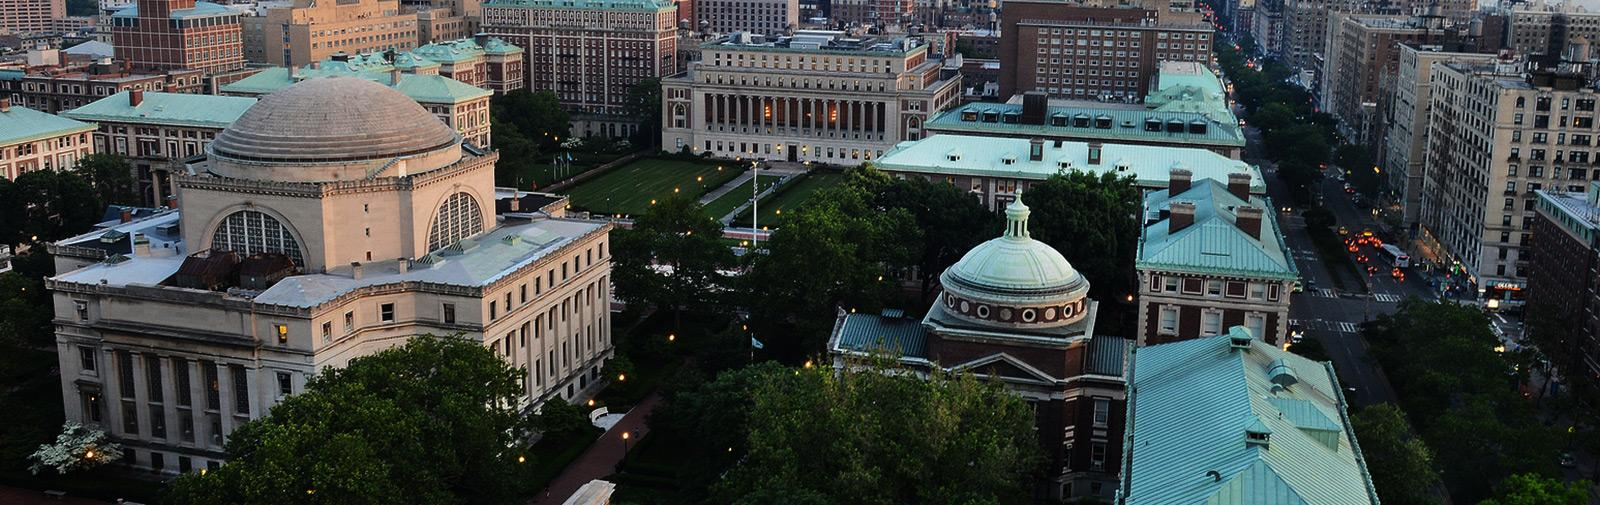 Aerial view of the Columbia University Morningside campus